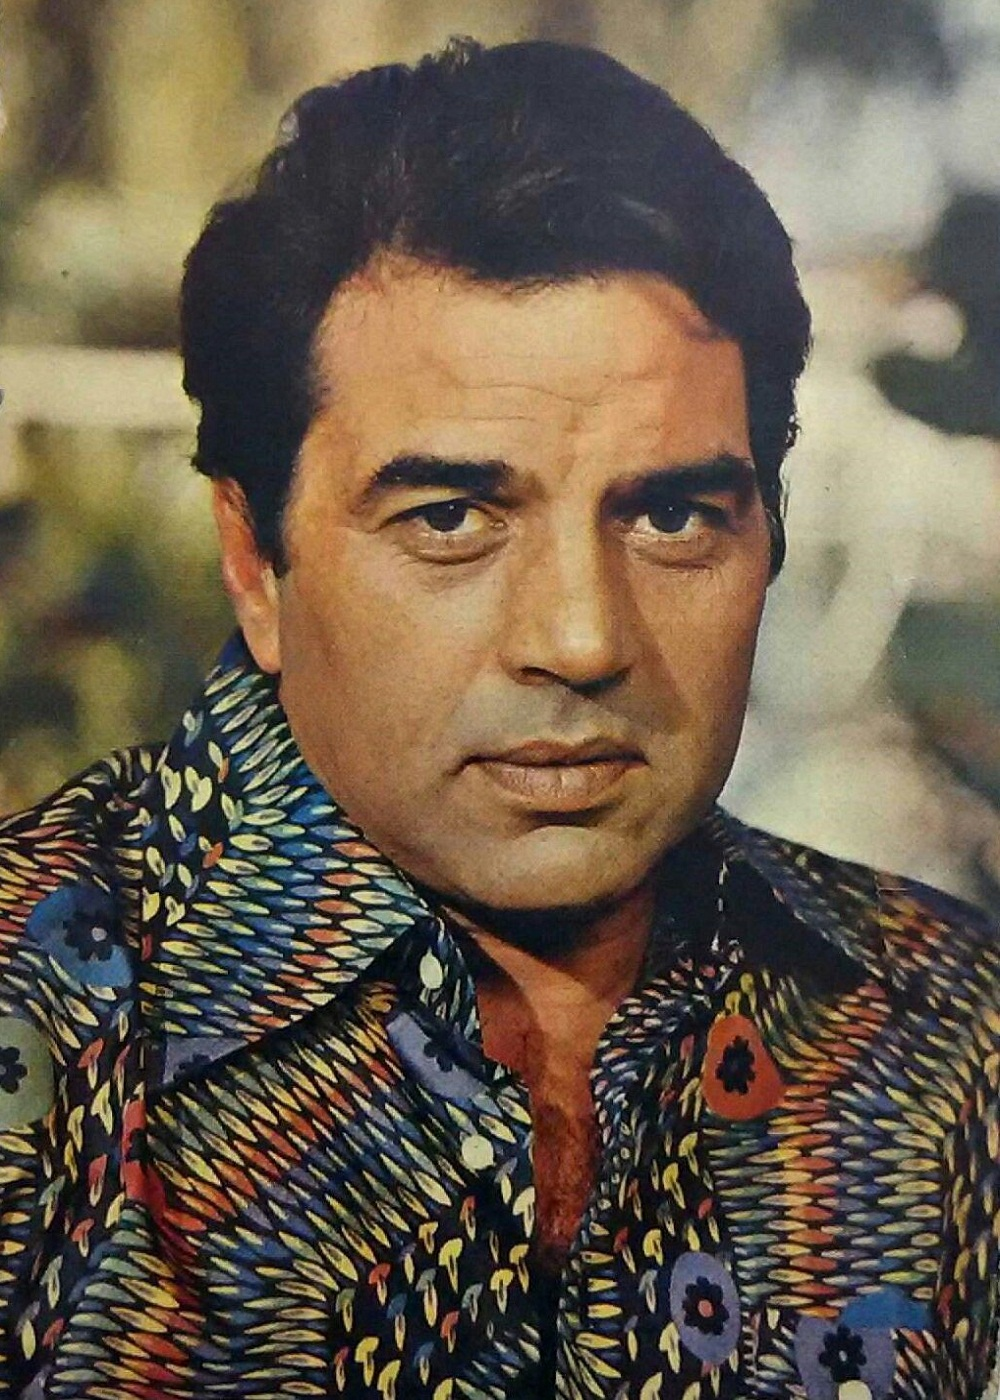 Actor Dharmendra's new restaurant name will be Hee-Man